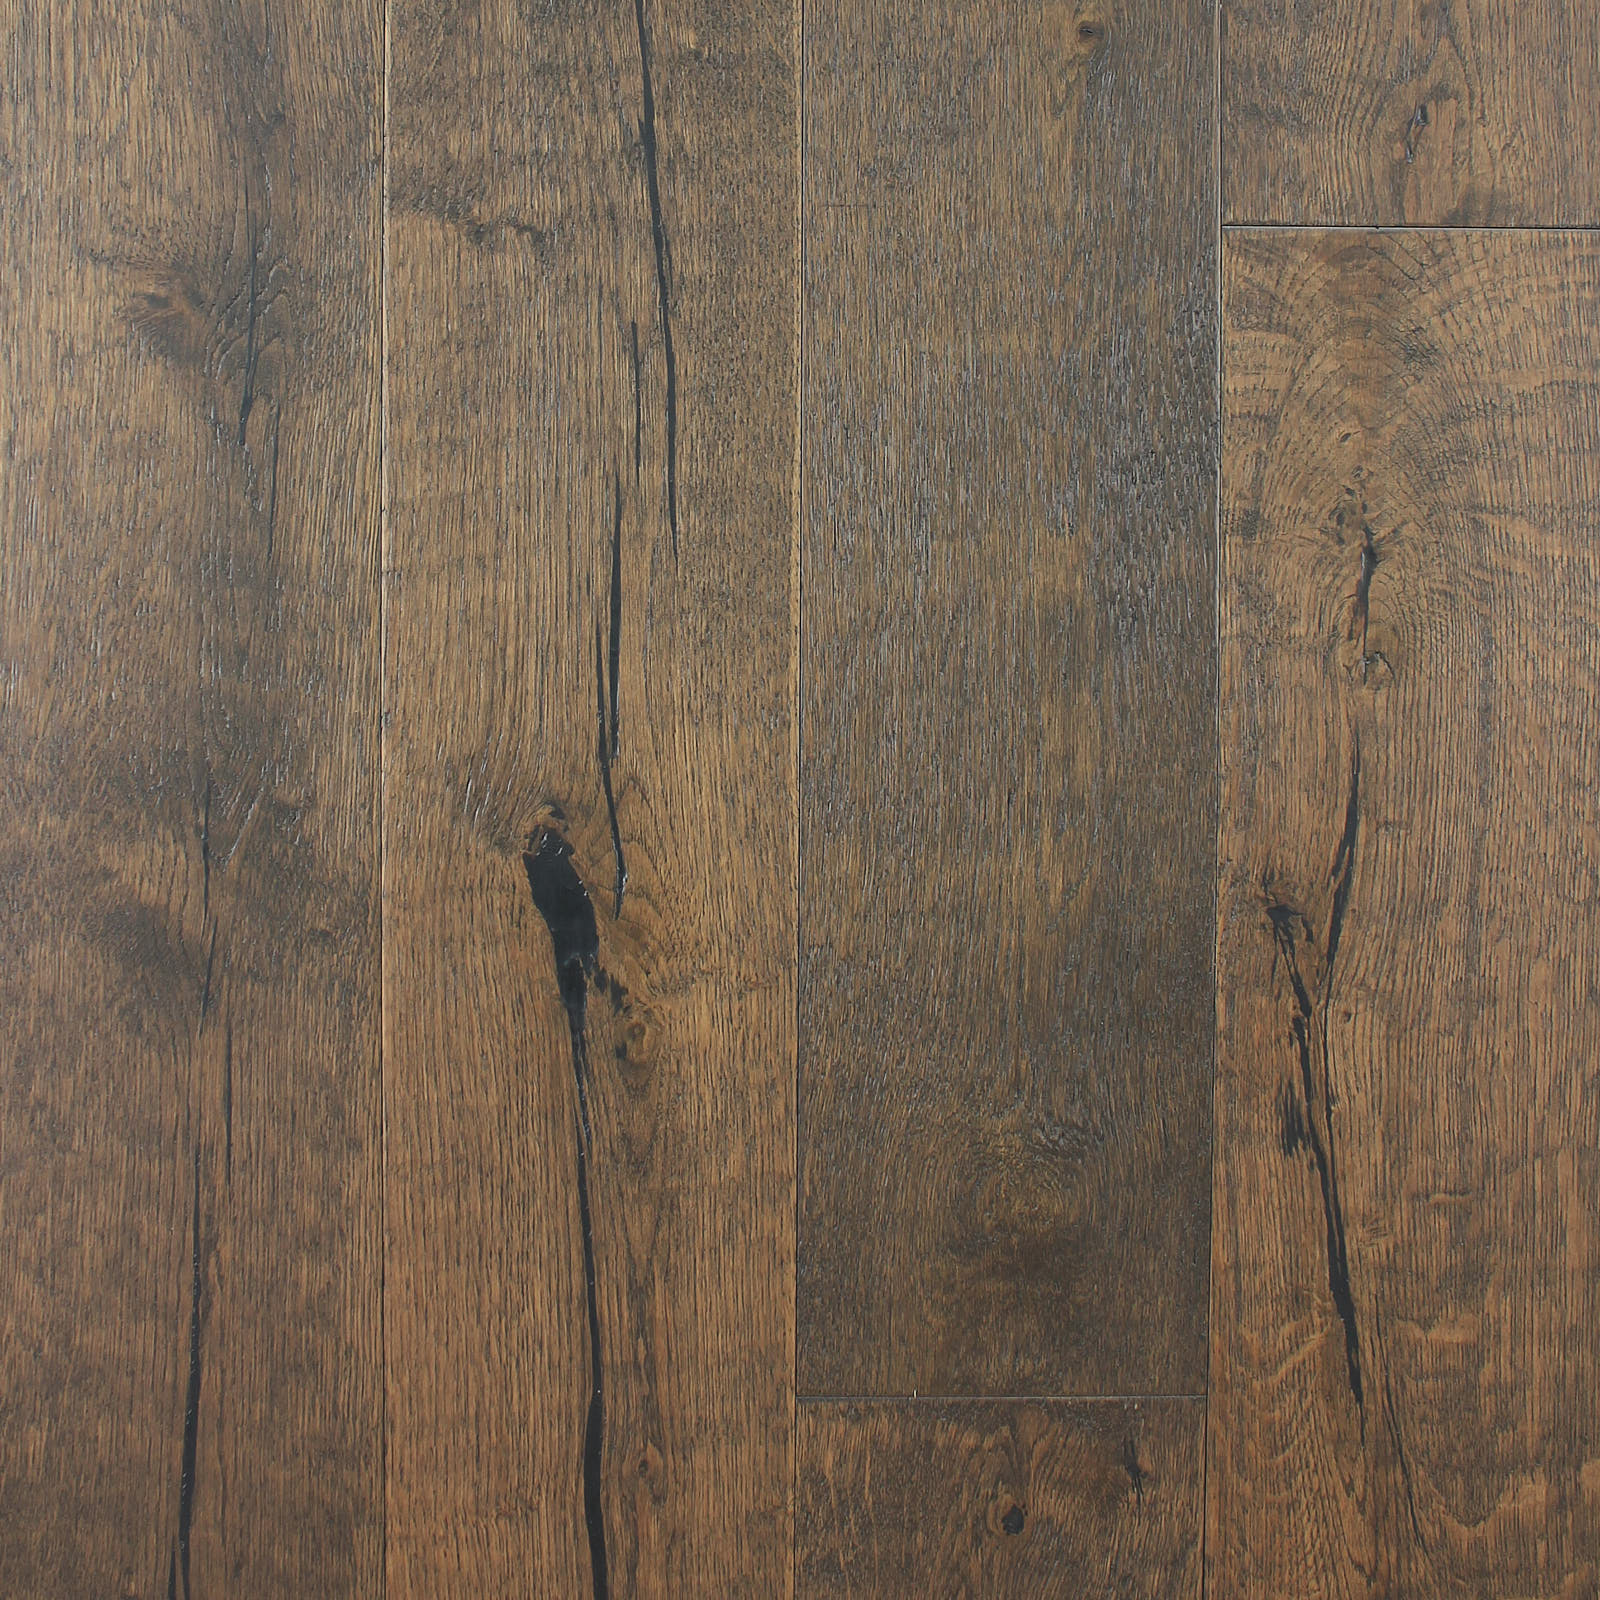 Ruvido Livigno Engineered Hardwood Flooring